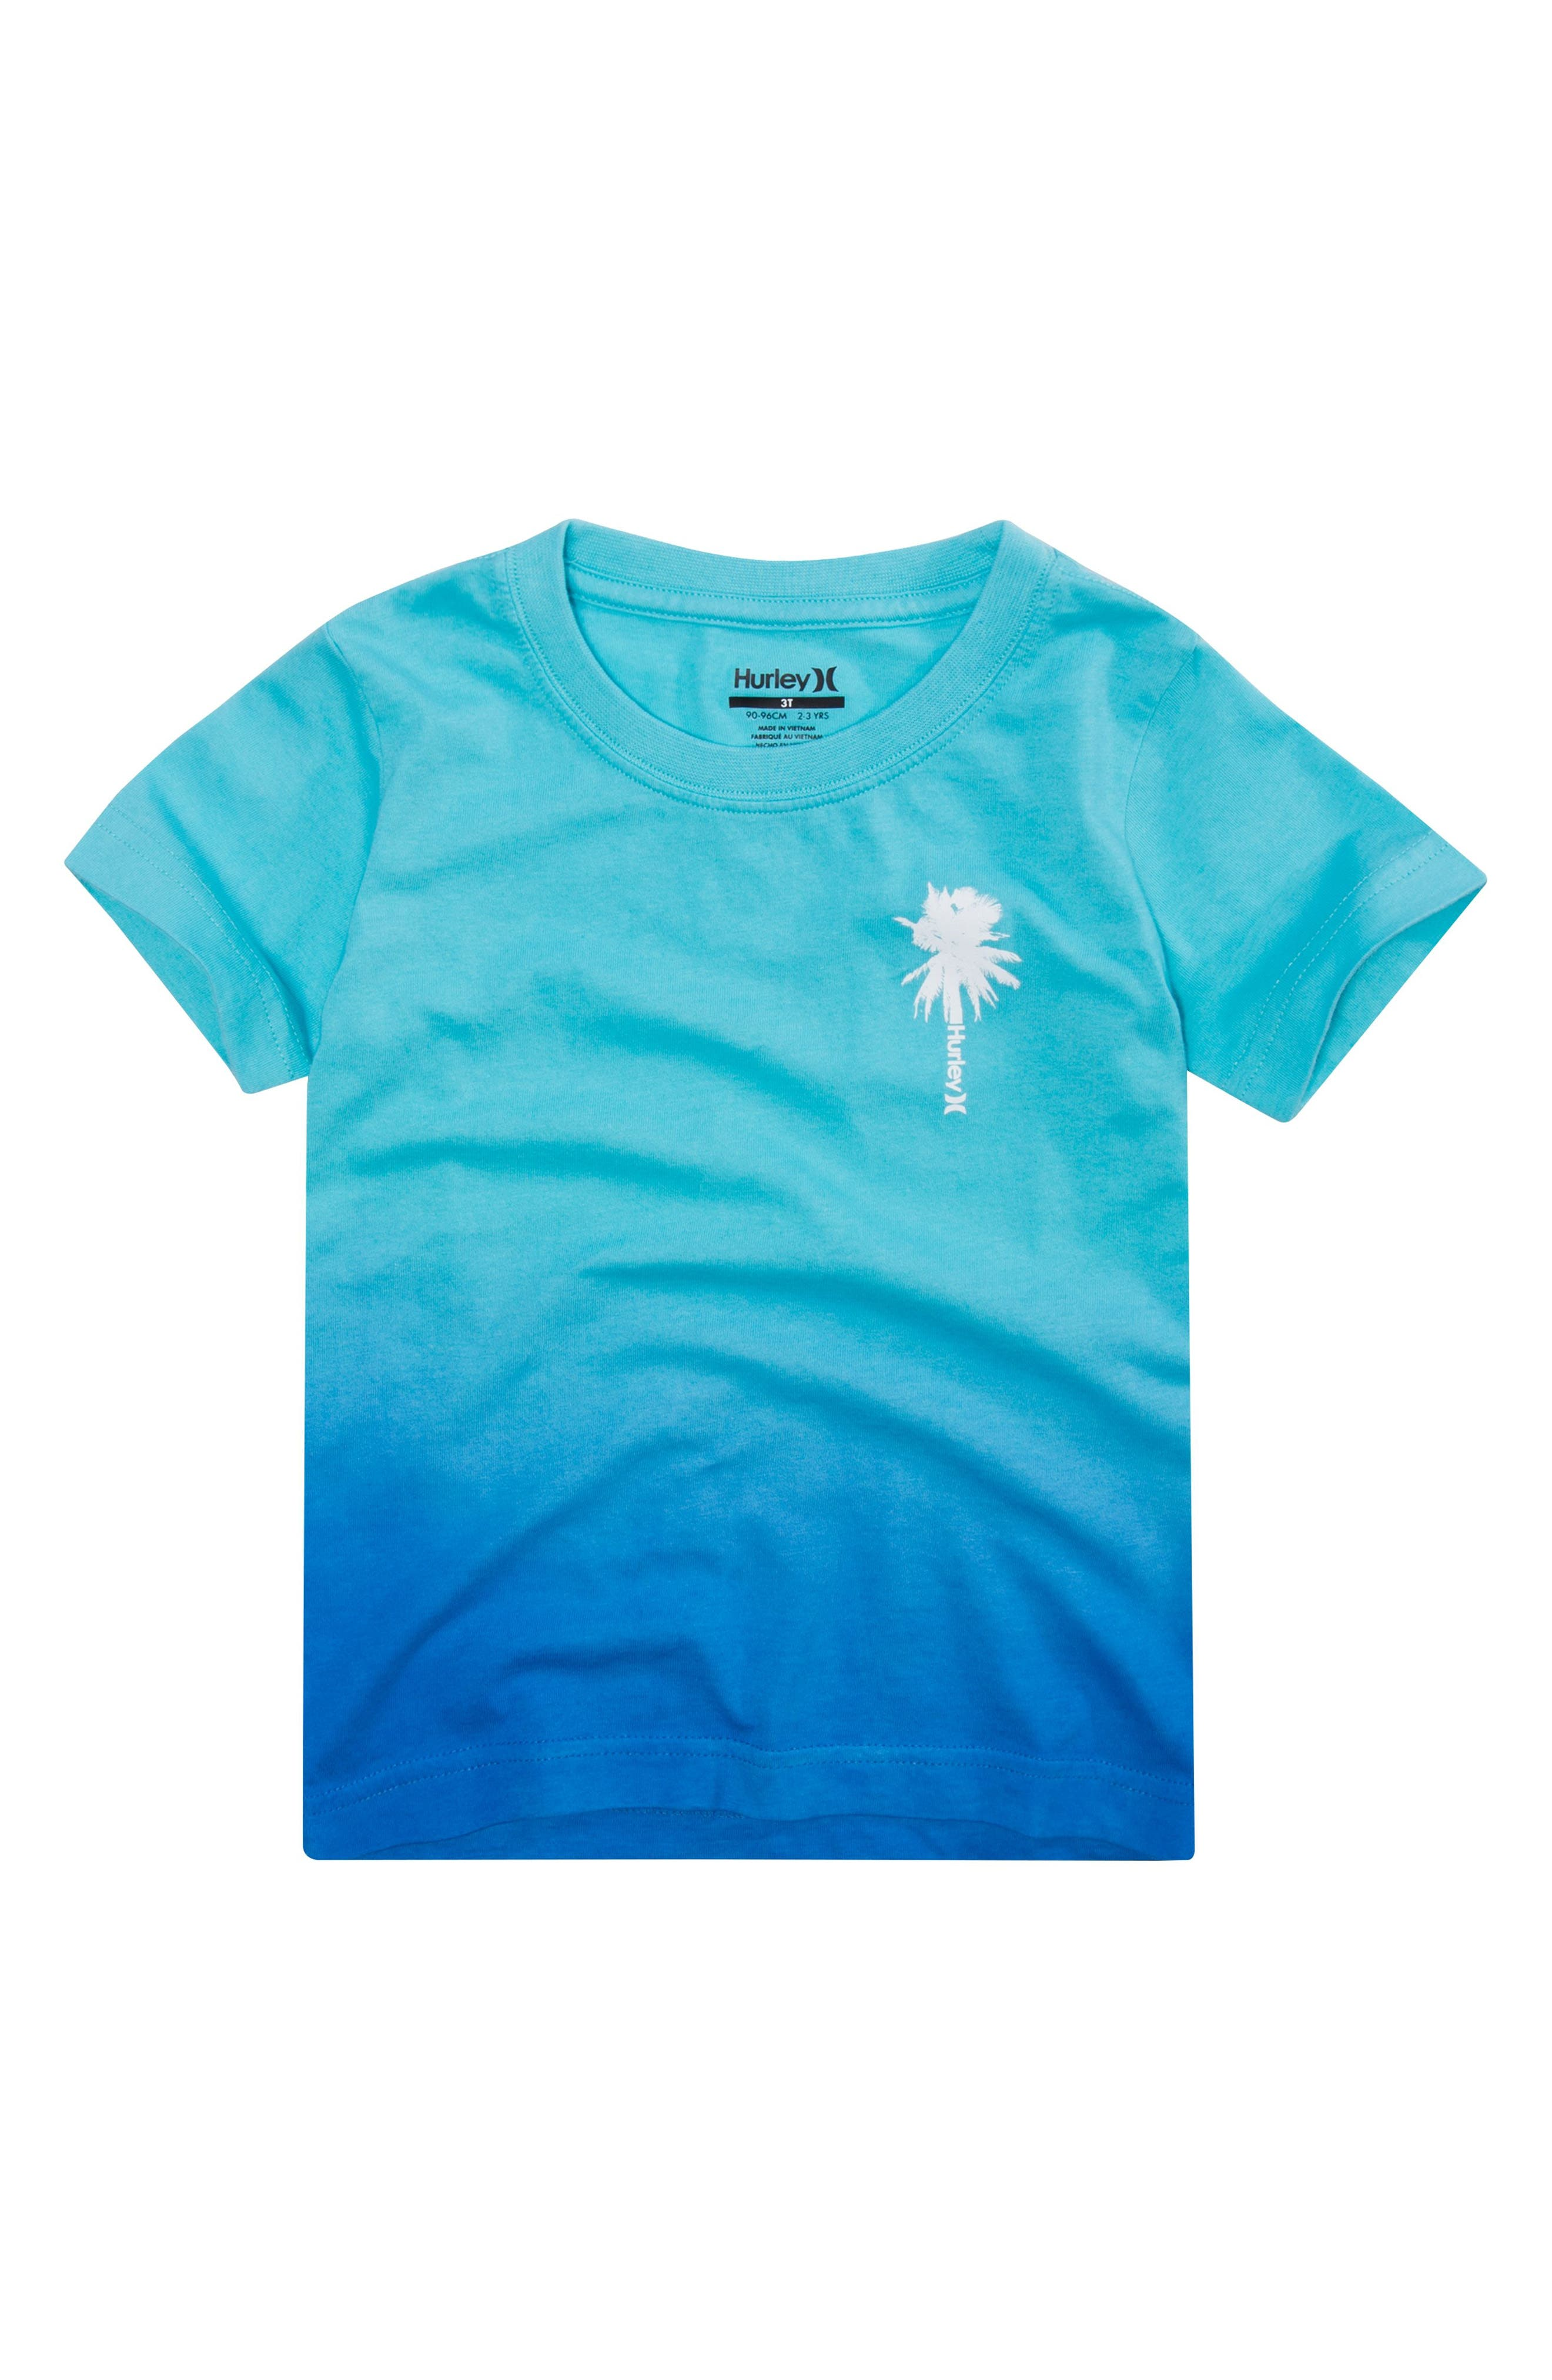 Alternate Image 1 Selected - Hurley Trajectory Gradient T-Shirt (Toddler Boys & Little Boys)